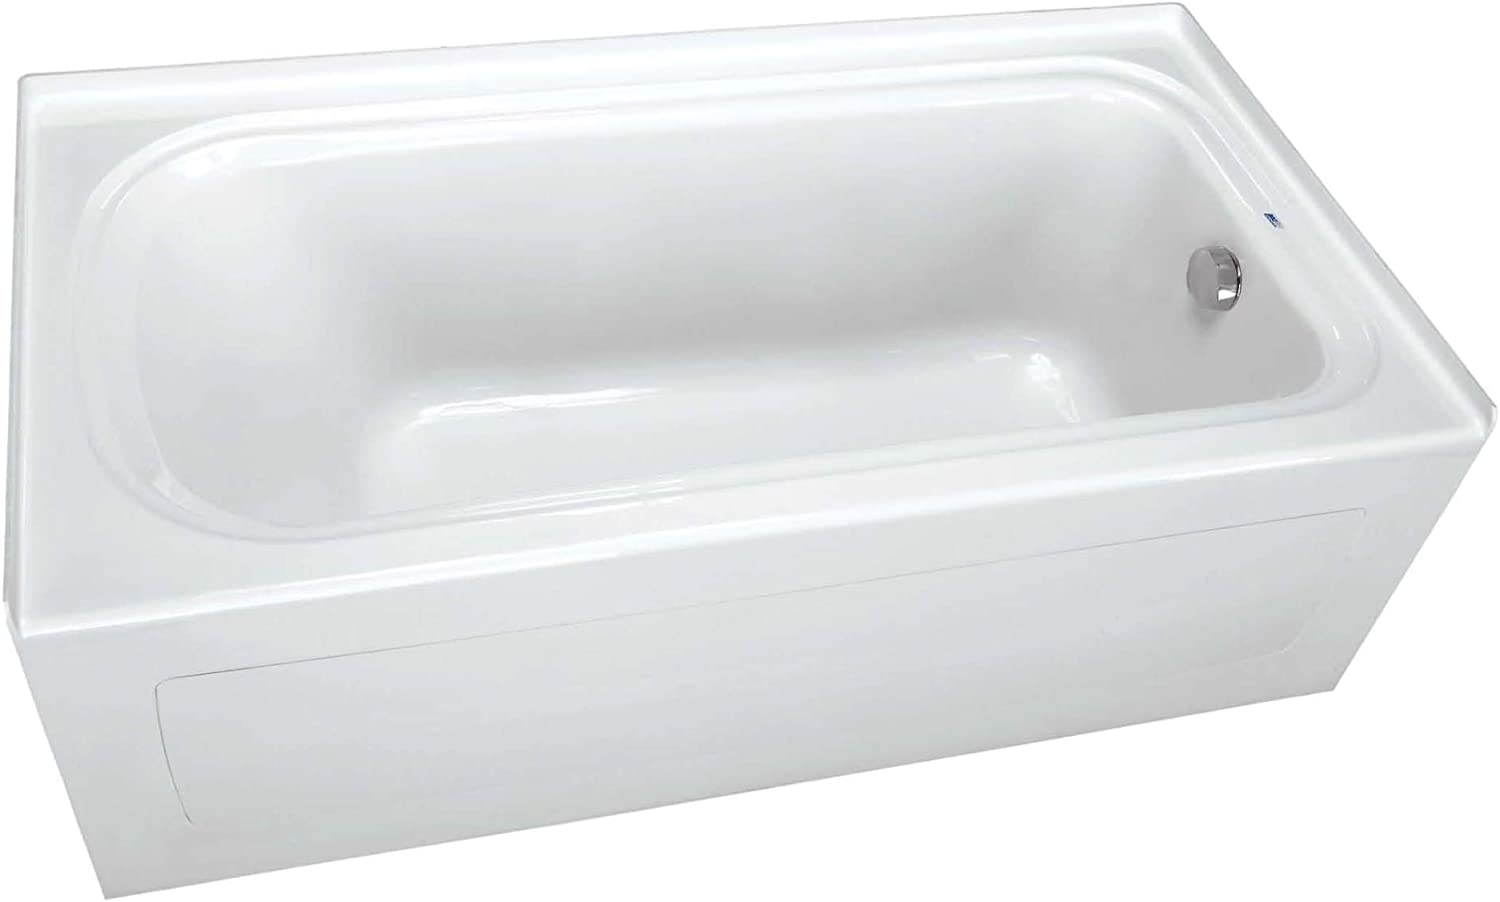 PROFLO PFS6042LSKWH 60 x 42 Alcove Soaking Bath Tub with Skirt and Left Hand Drain